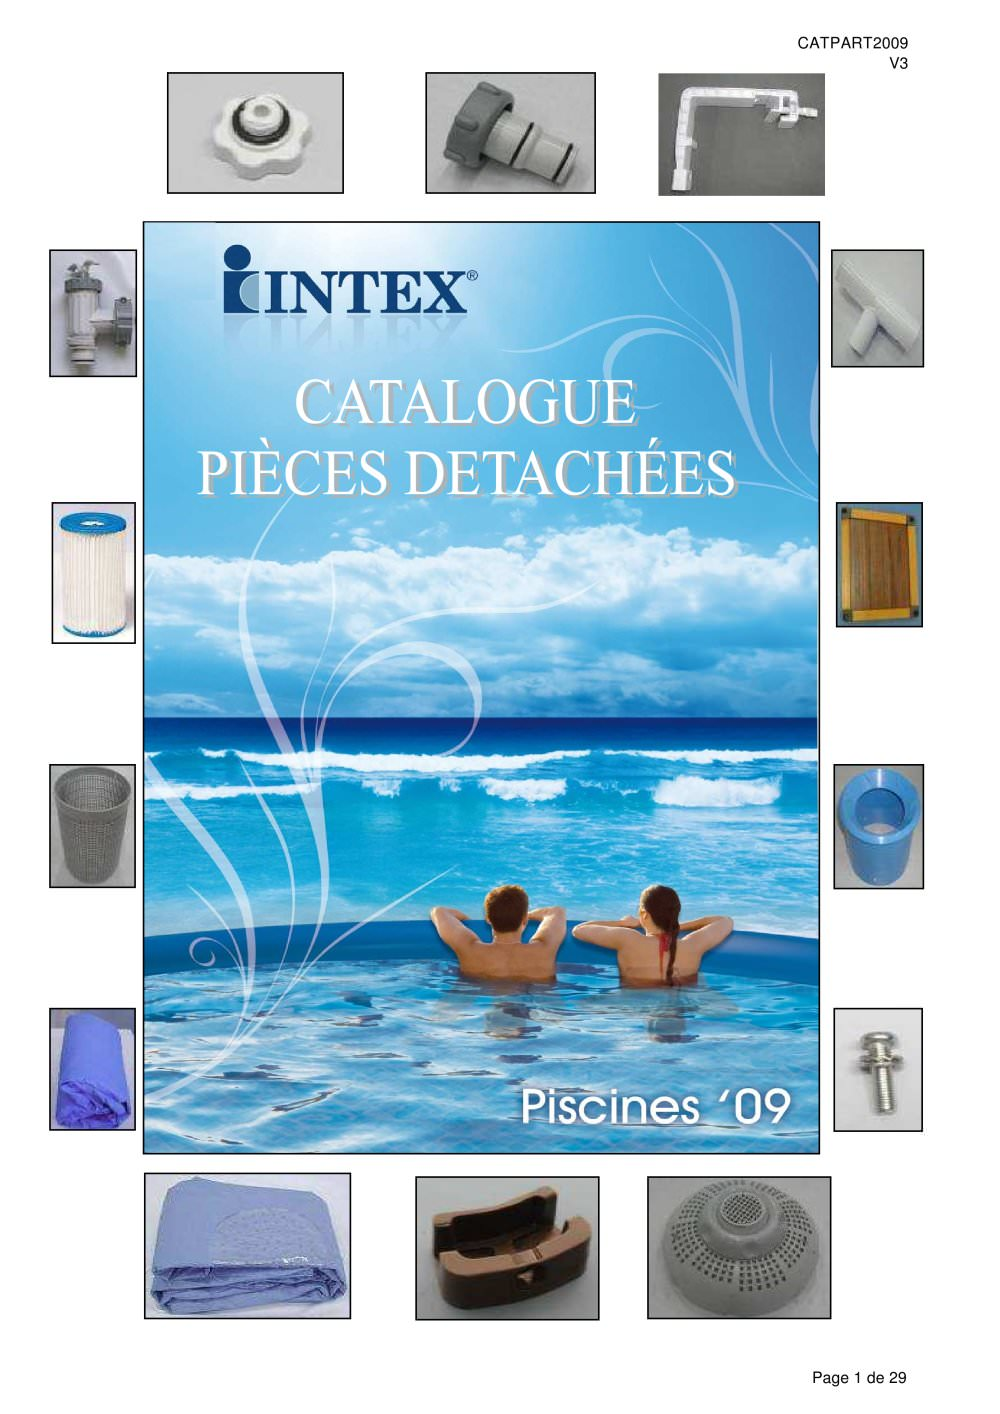 PIECES DETACHEES - INTEX - Catalogue PDF   Documentation   Brochure f09808e056d